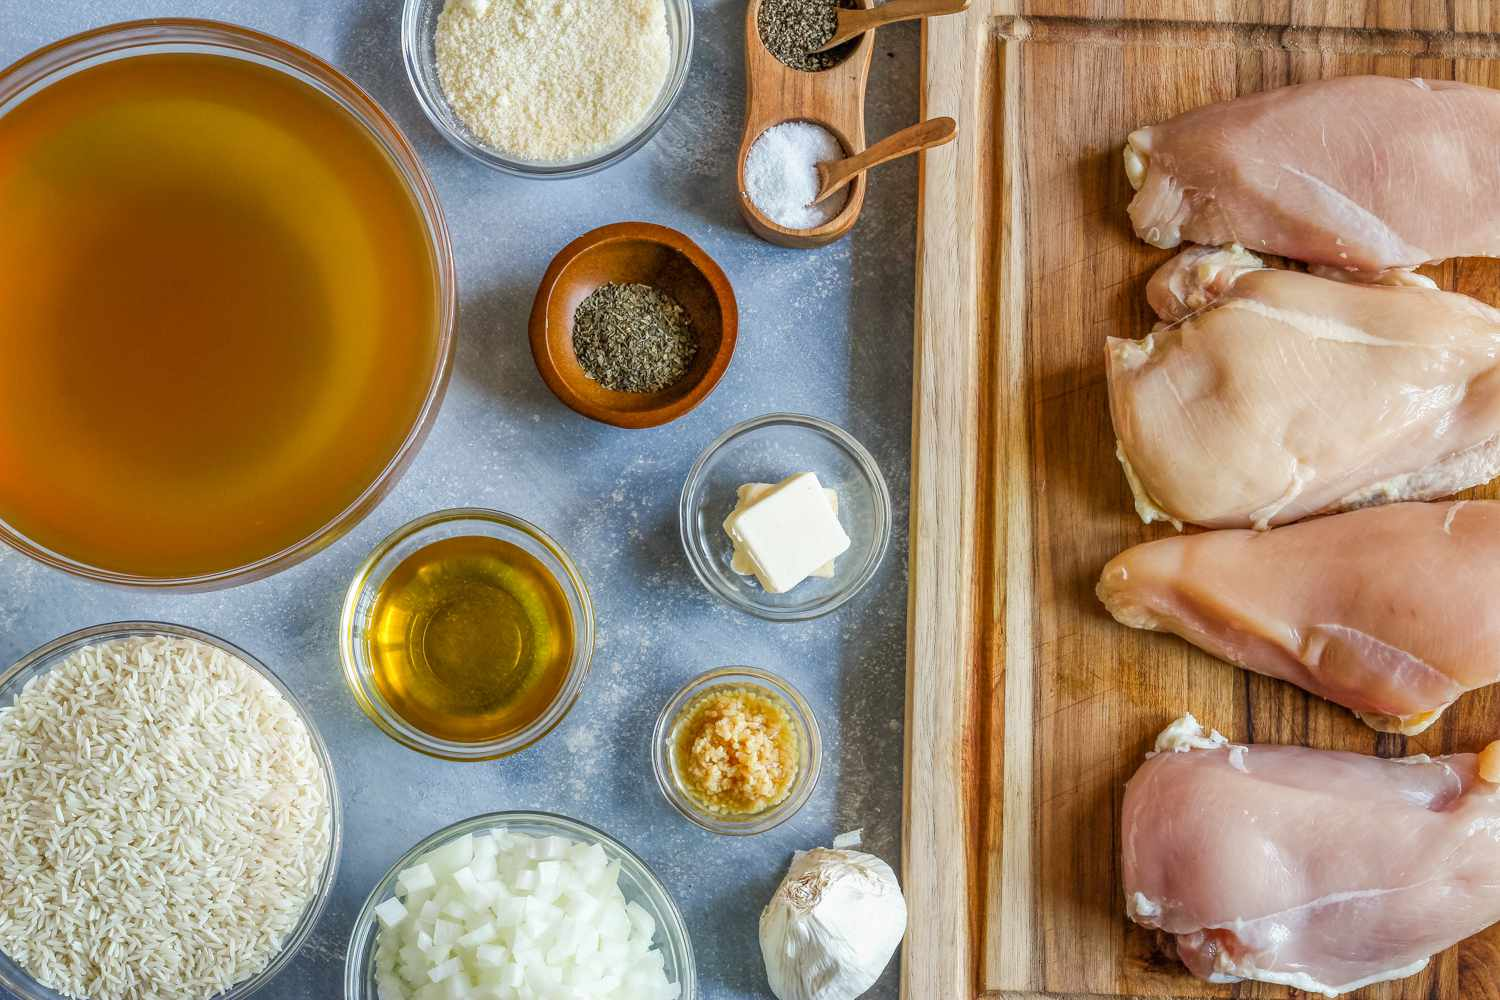 Ingredients for chicken risotto